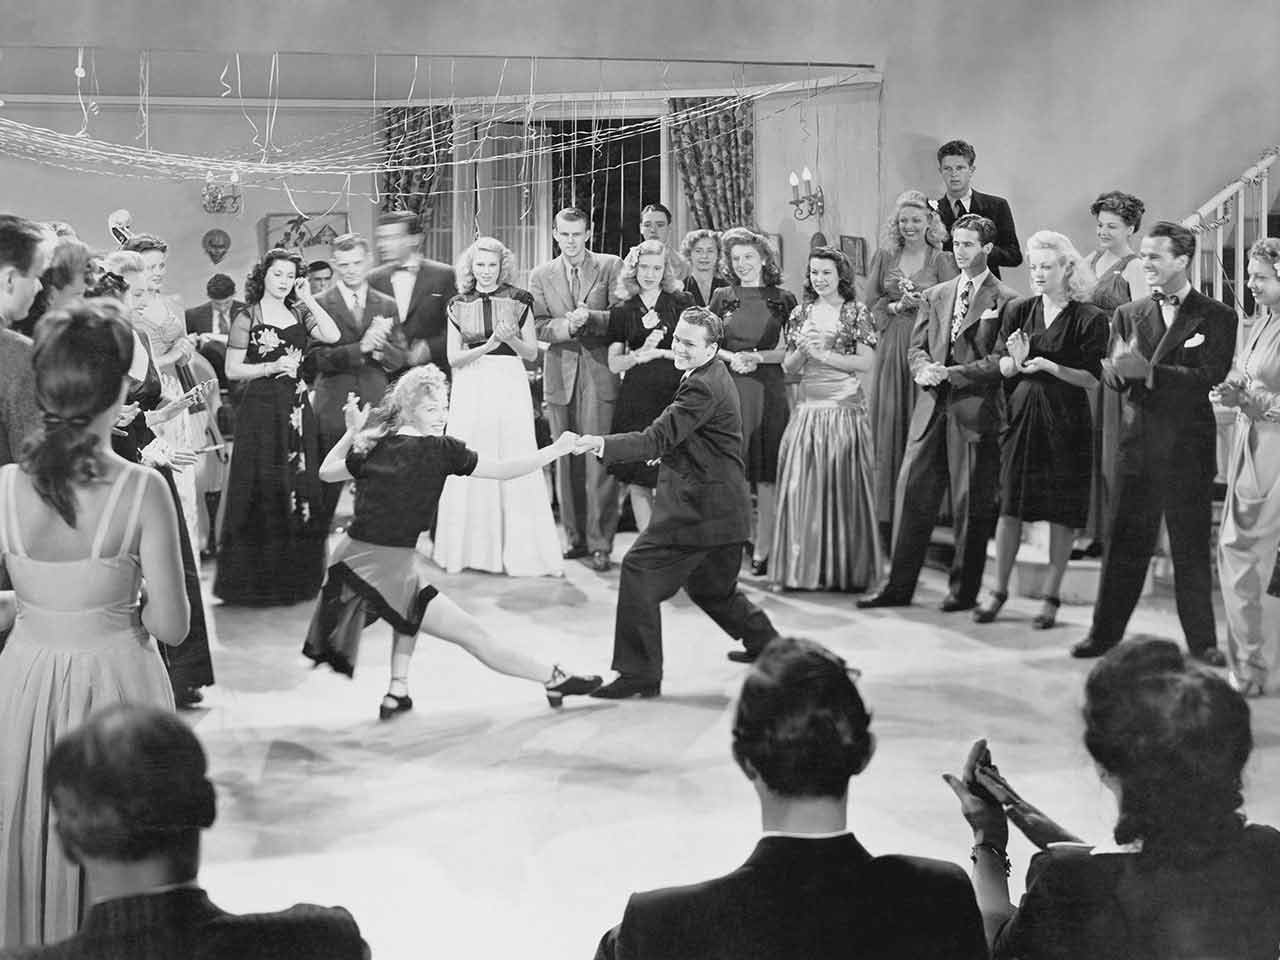 A couple swing dancing, a type of dance from the 1940s